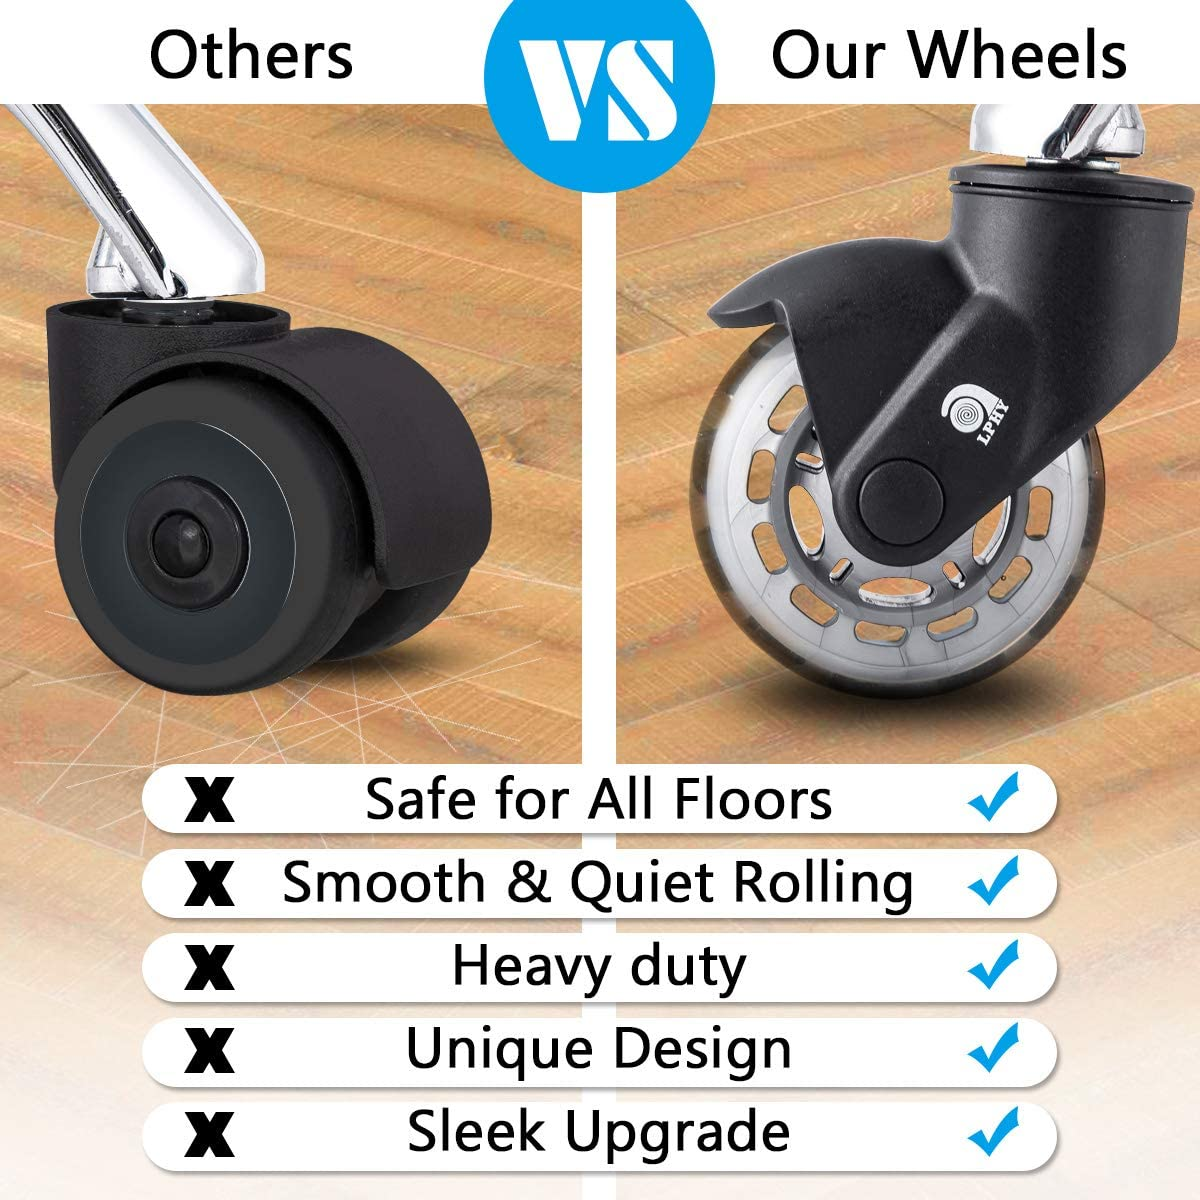 LPHY Office Chair Caster Wheels Boss Chair Wheels 3 Replacement Rubber Casters - Heavy Duty /& Safe for All Floors -Rollerblade Style w//Universal Fit (Set of 5